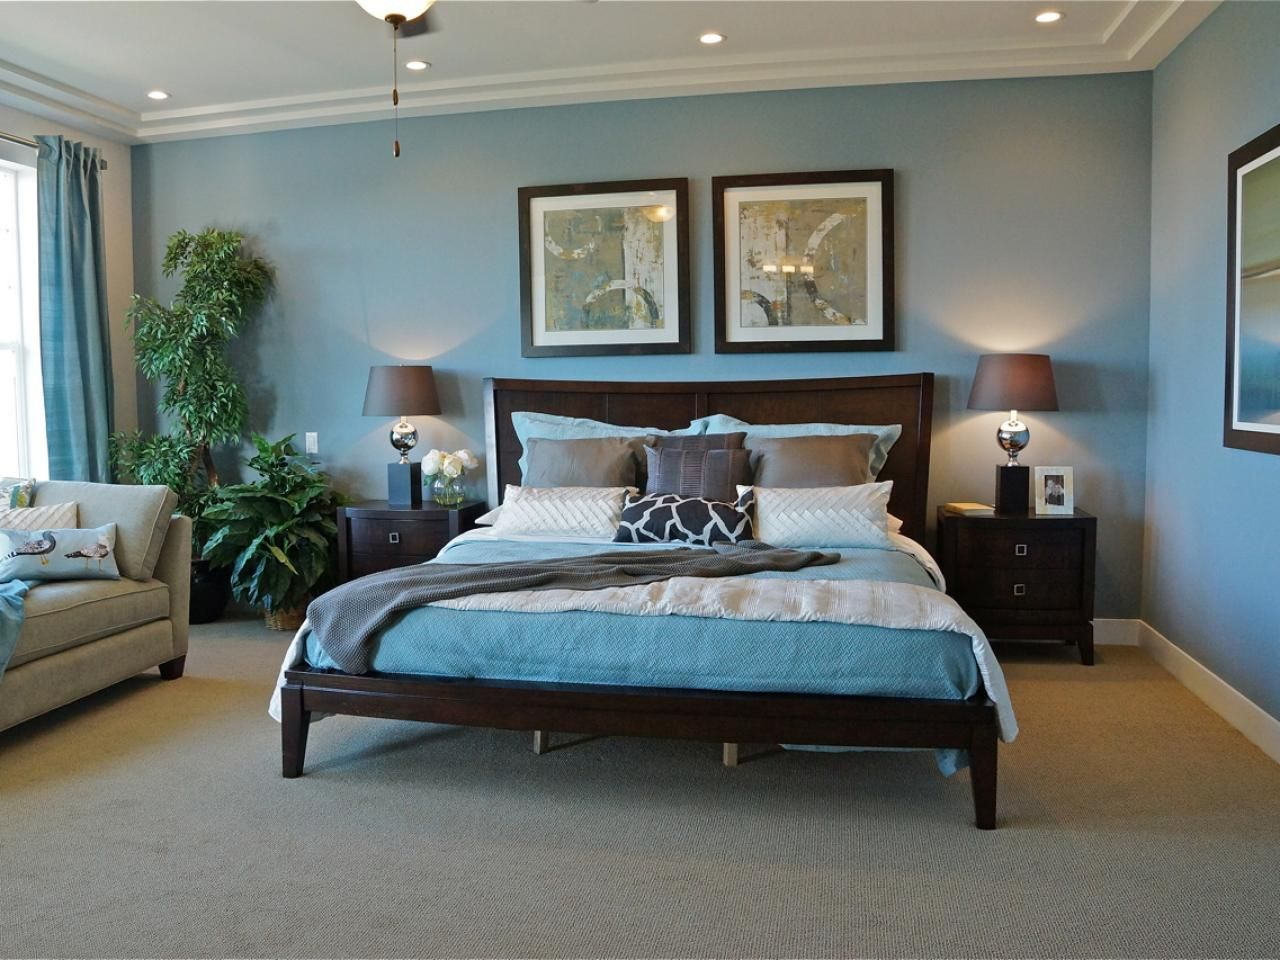 Black Wood Bedroom Furniture soothing and stately, this traditional bedroom pairs dark wood